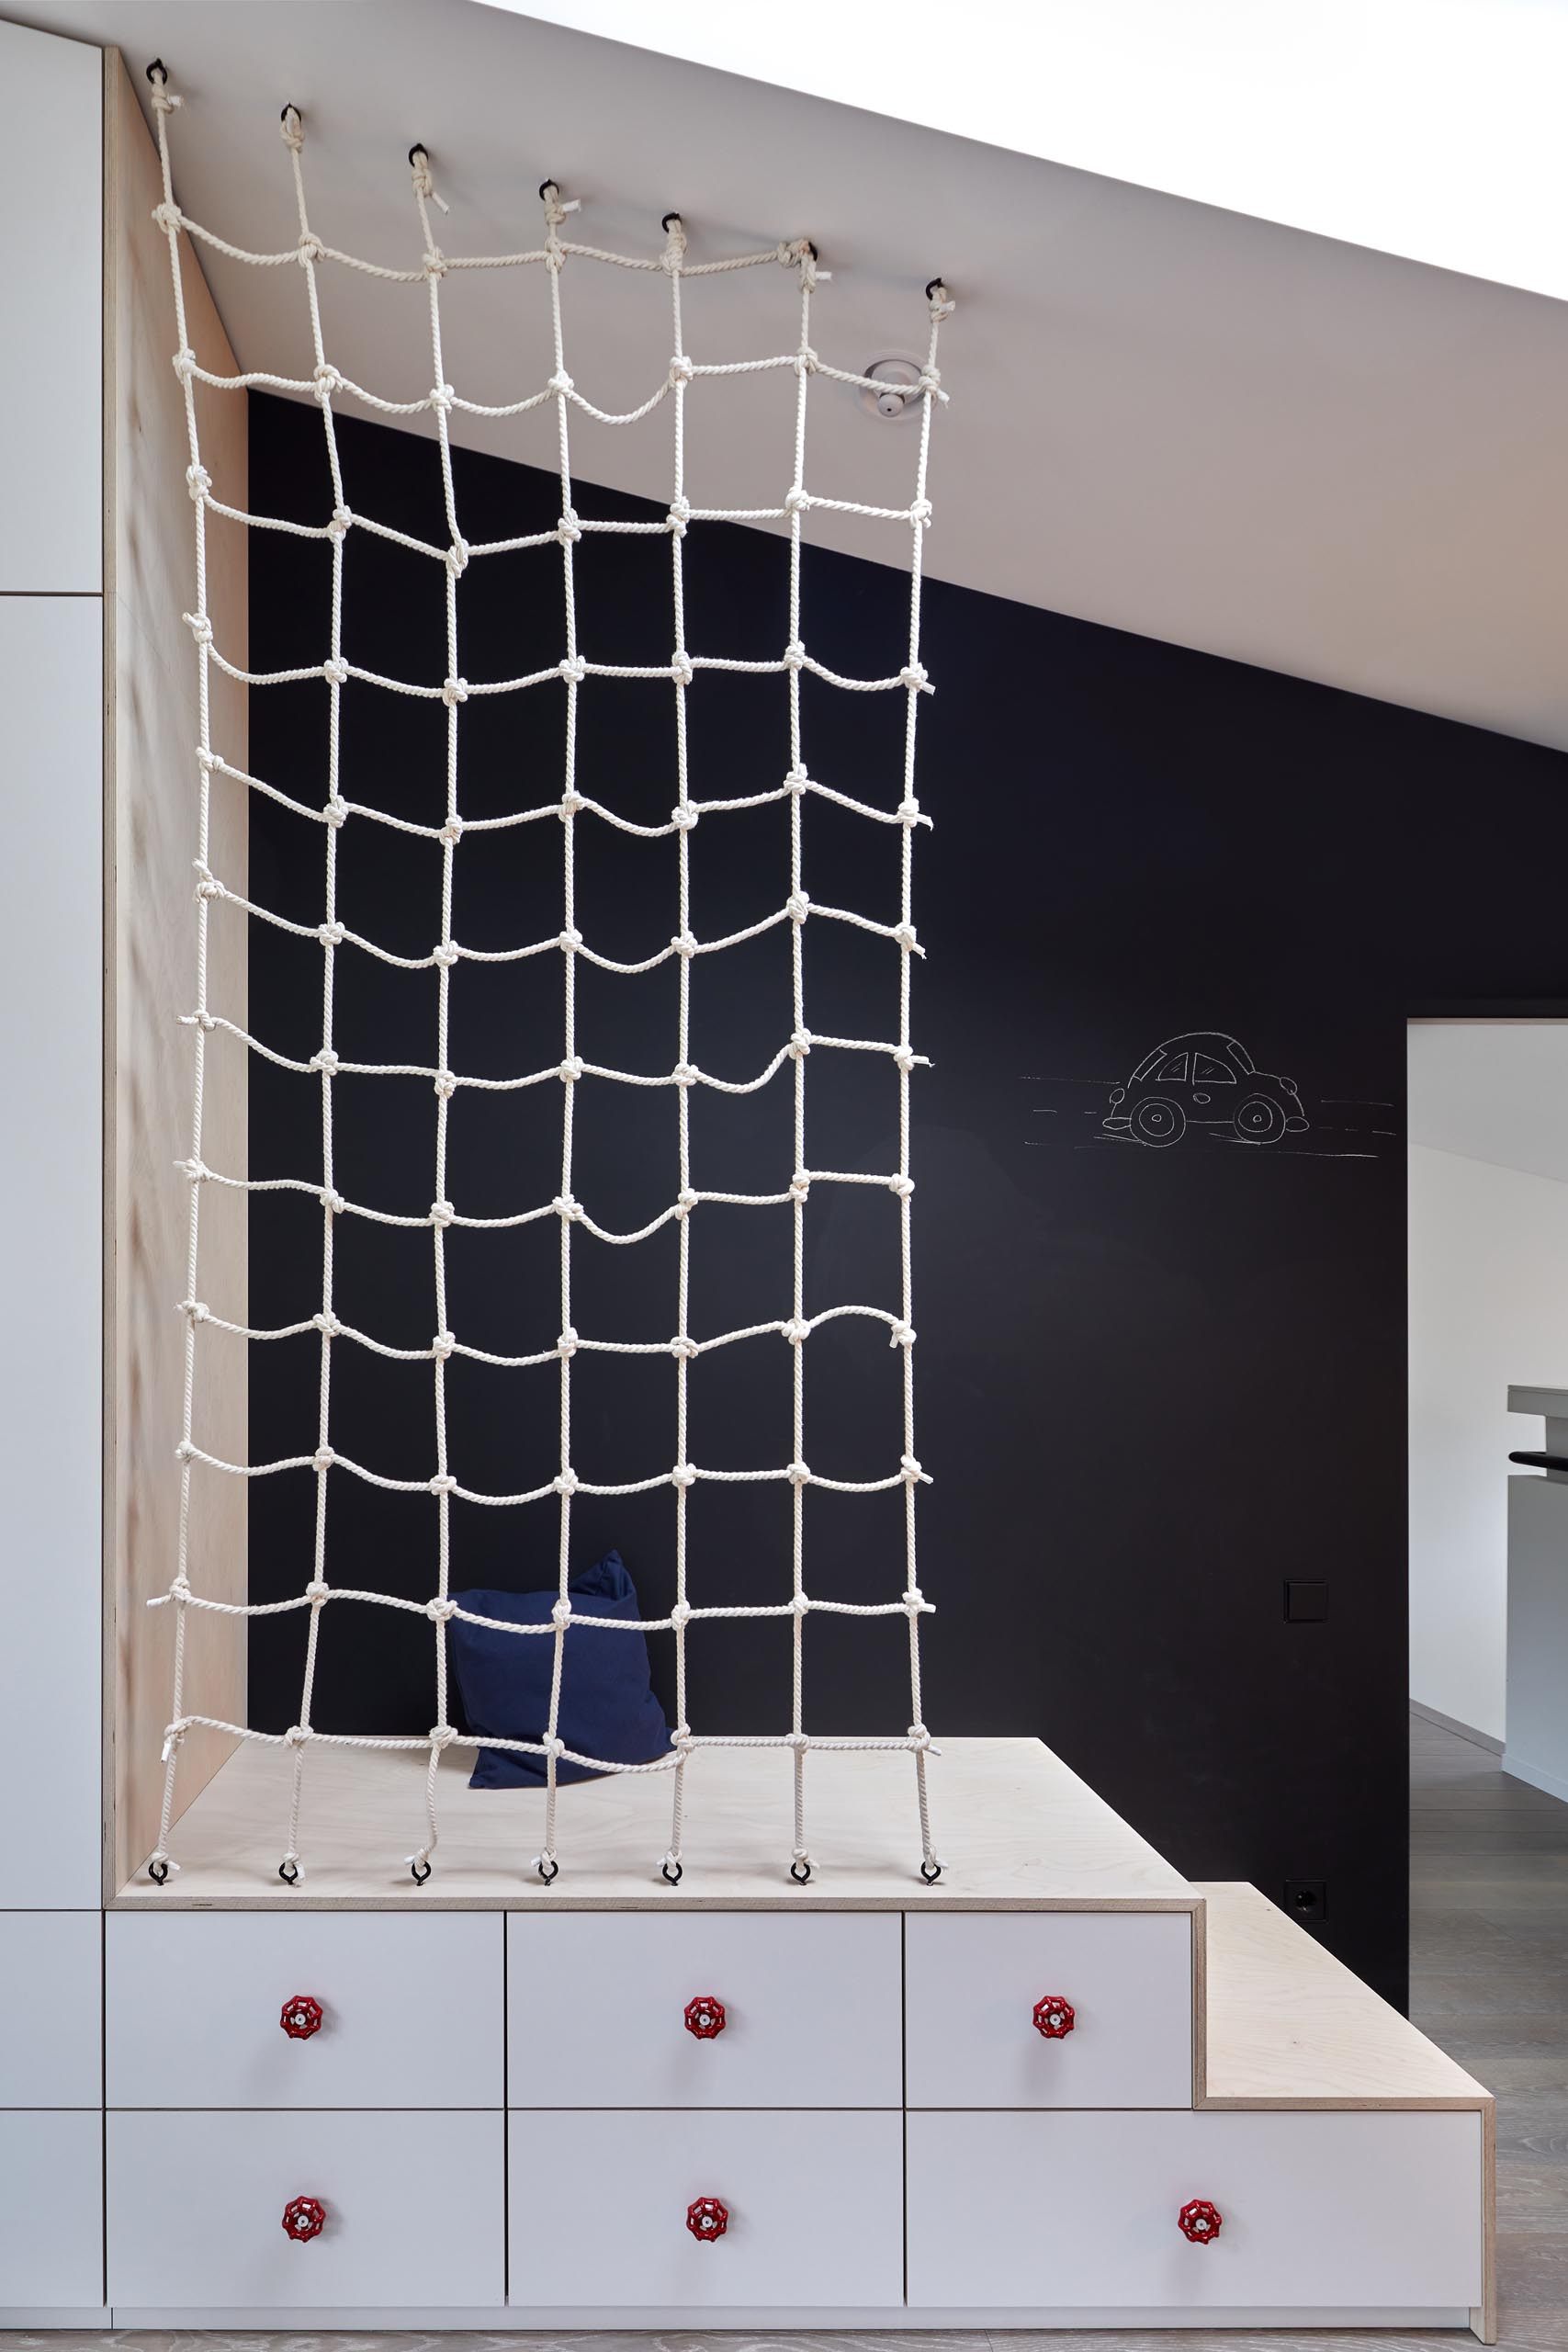 In this modern kid's bedroom, there's a chalkboard wall, built-in stepped storage, and a net accent.